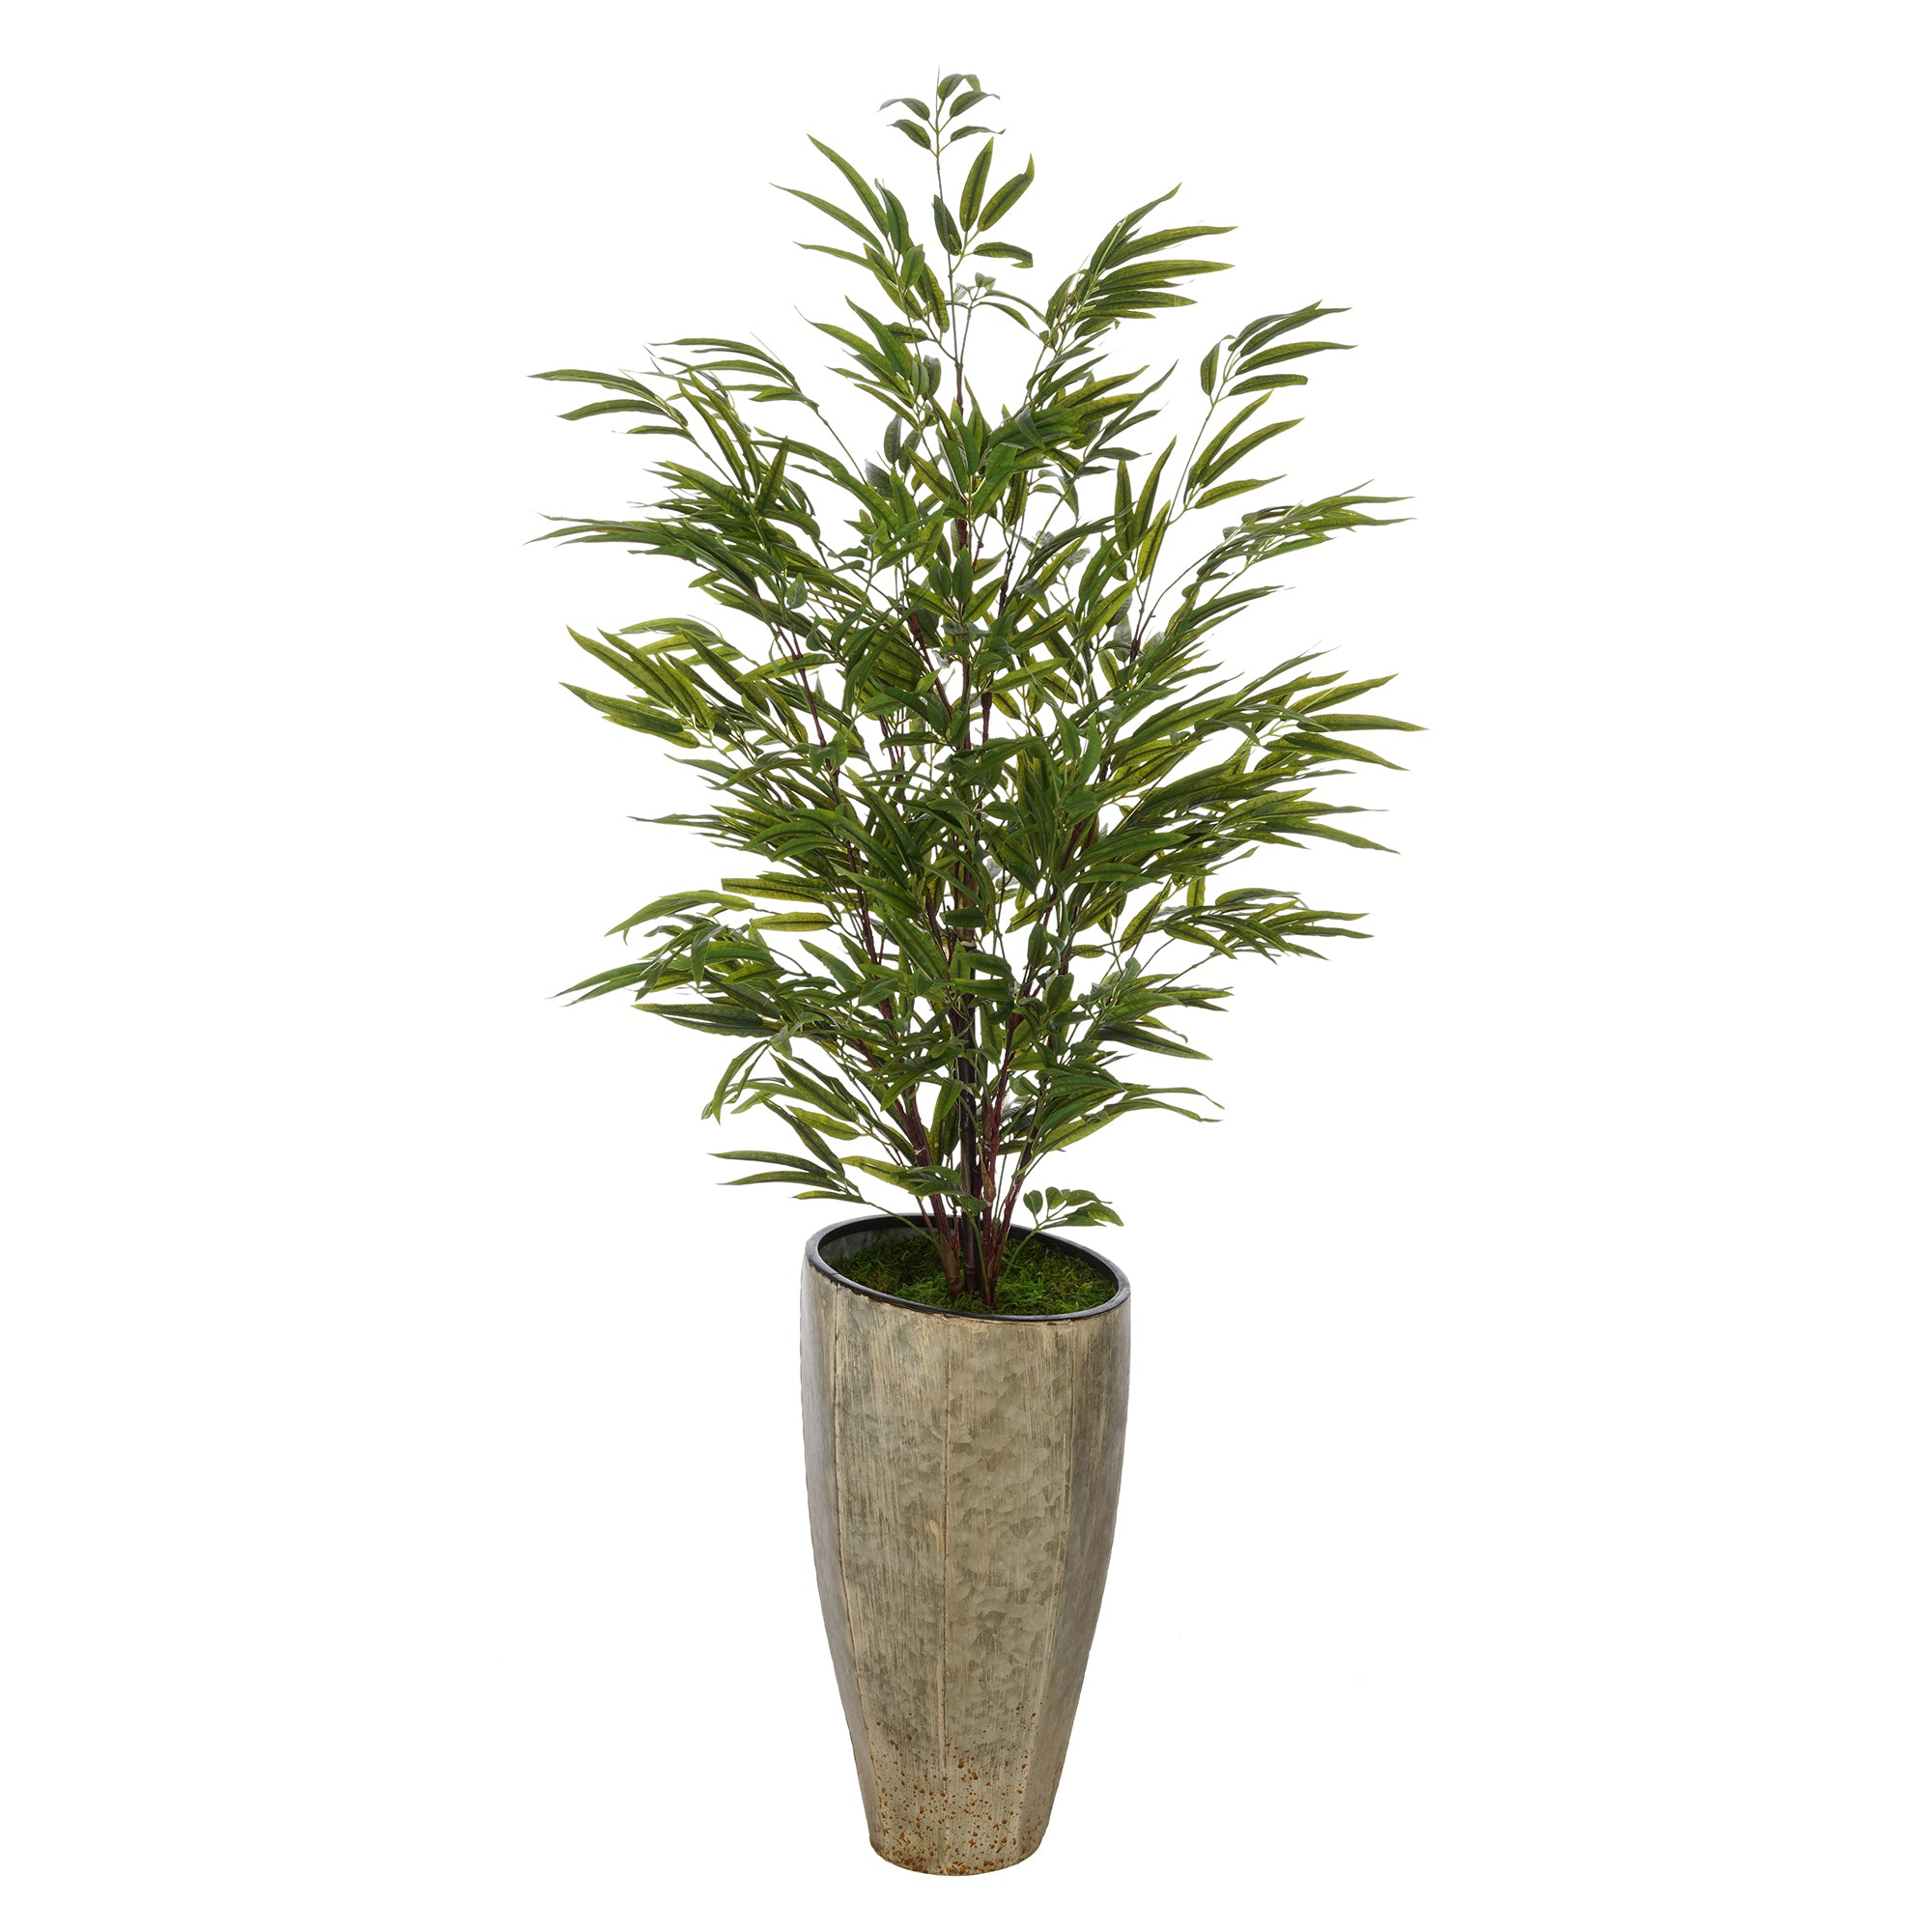 Artificial 56-inch Bamboo in Angled Industrial Metal Planter